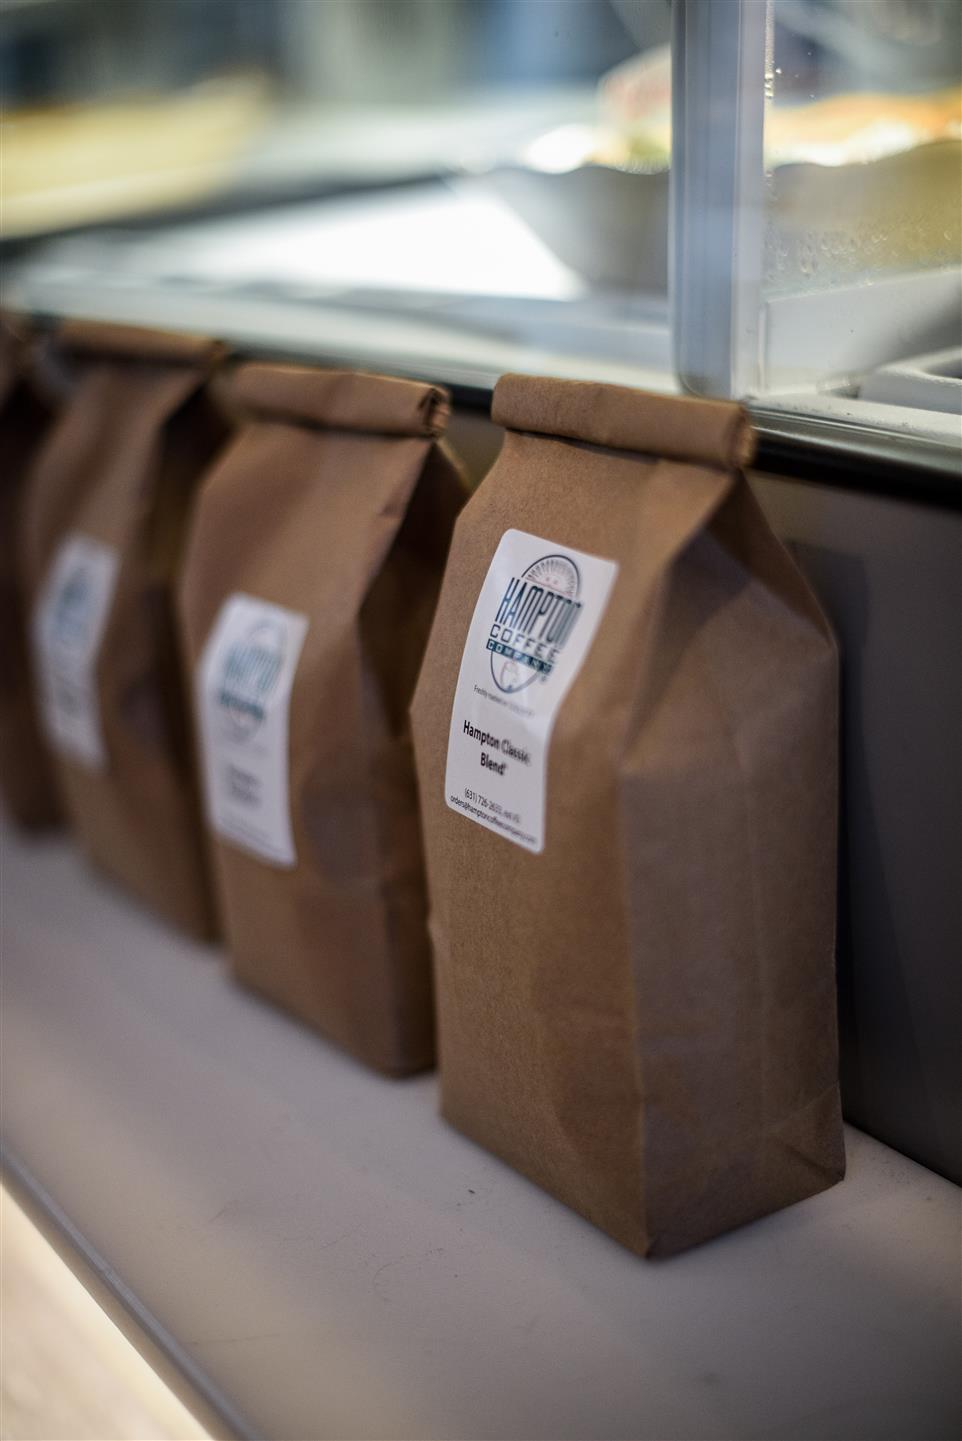 Bags of coffee lined up on display